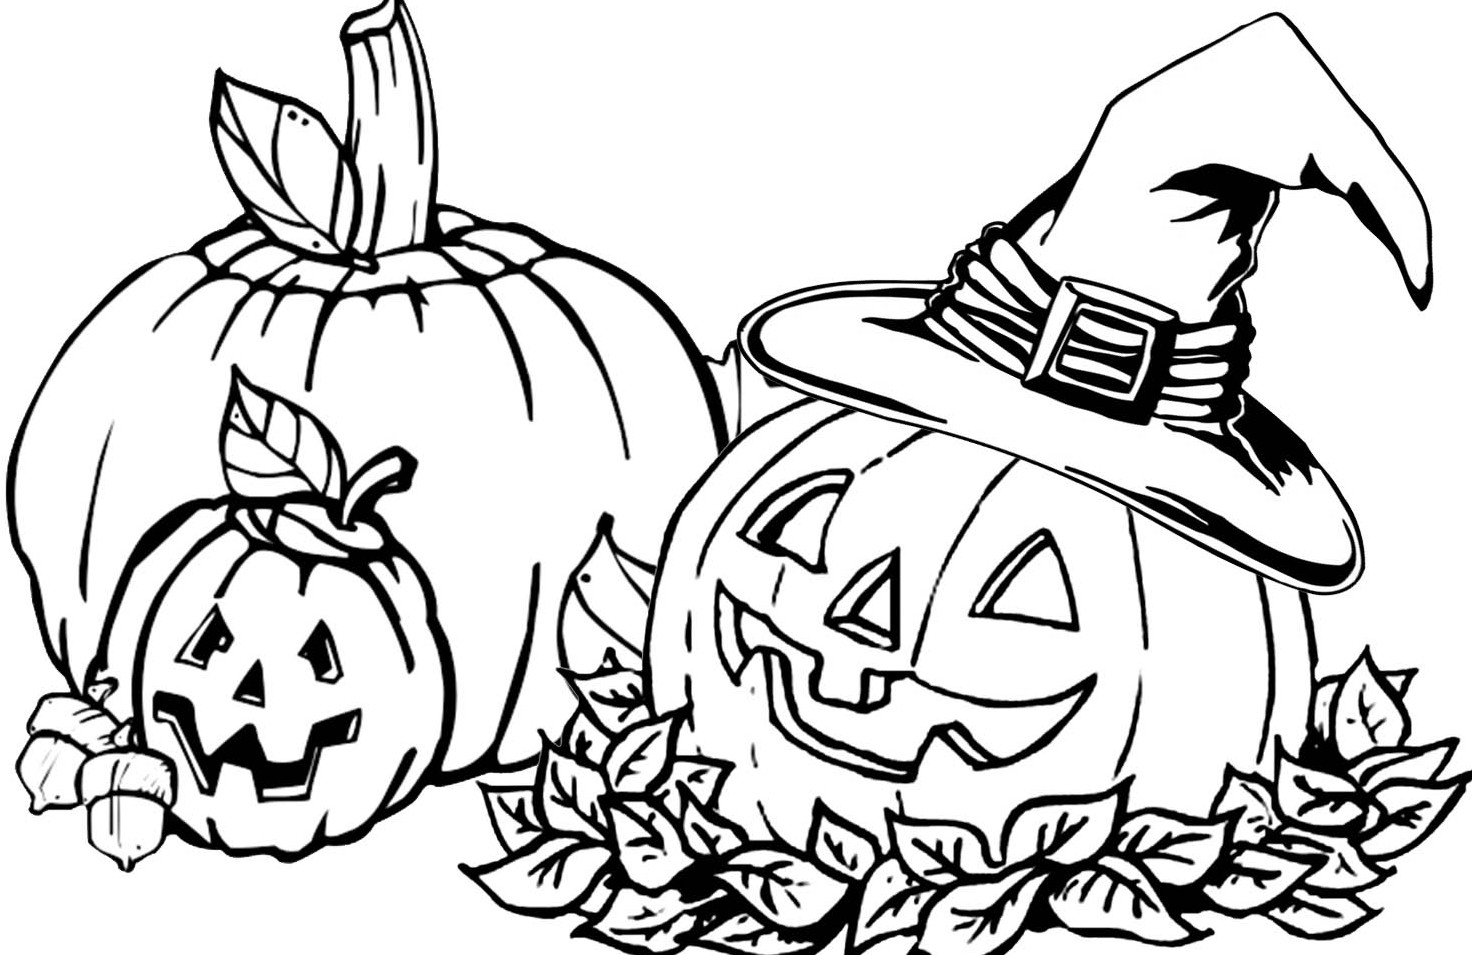 coloring pages of a pumpkin free printable pumpkin coloring pages for kids cool2bkids pumpkin of coloring pages a